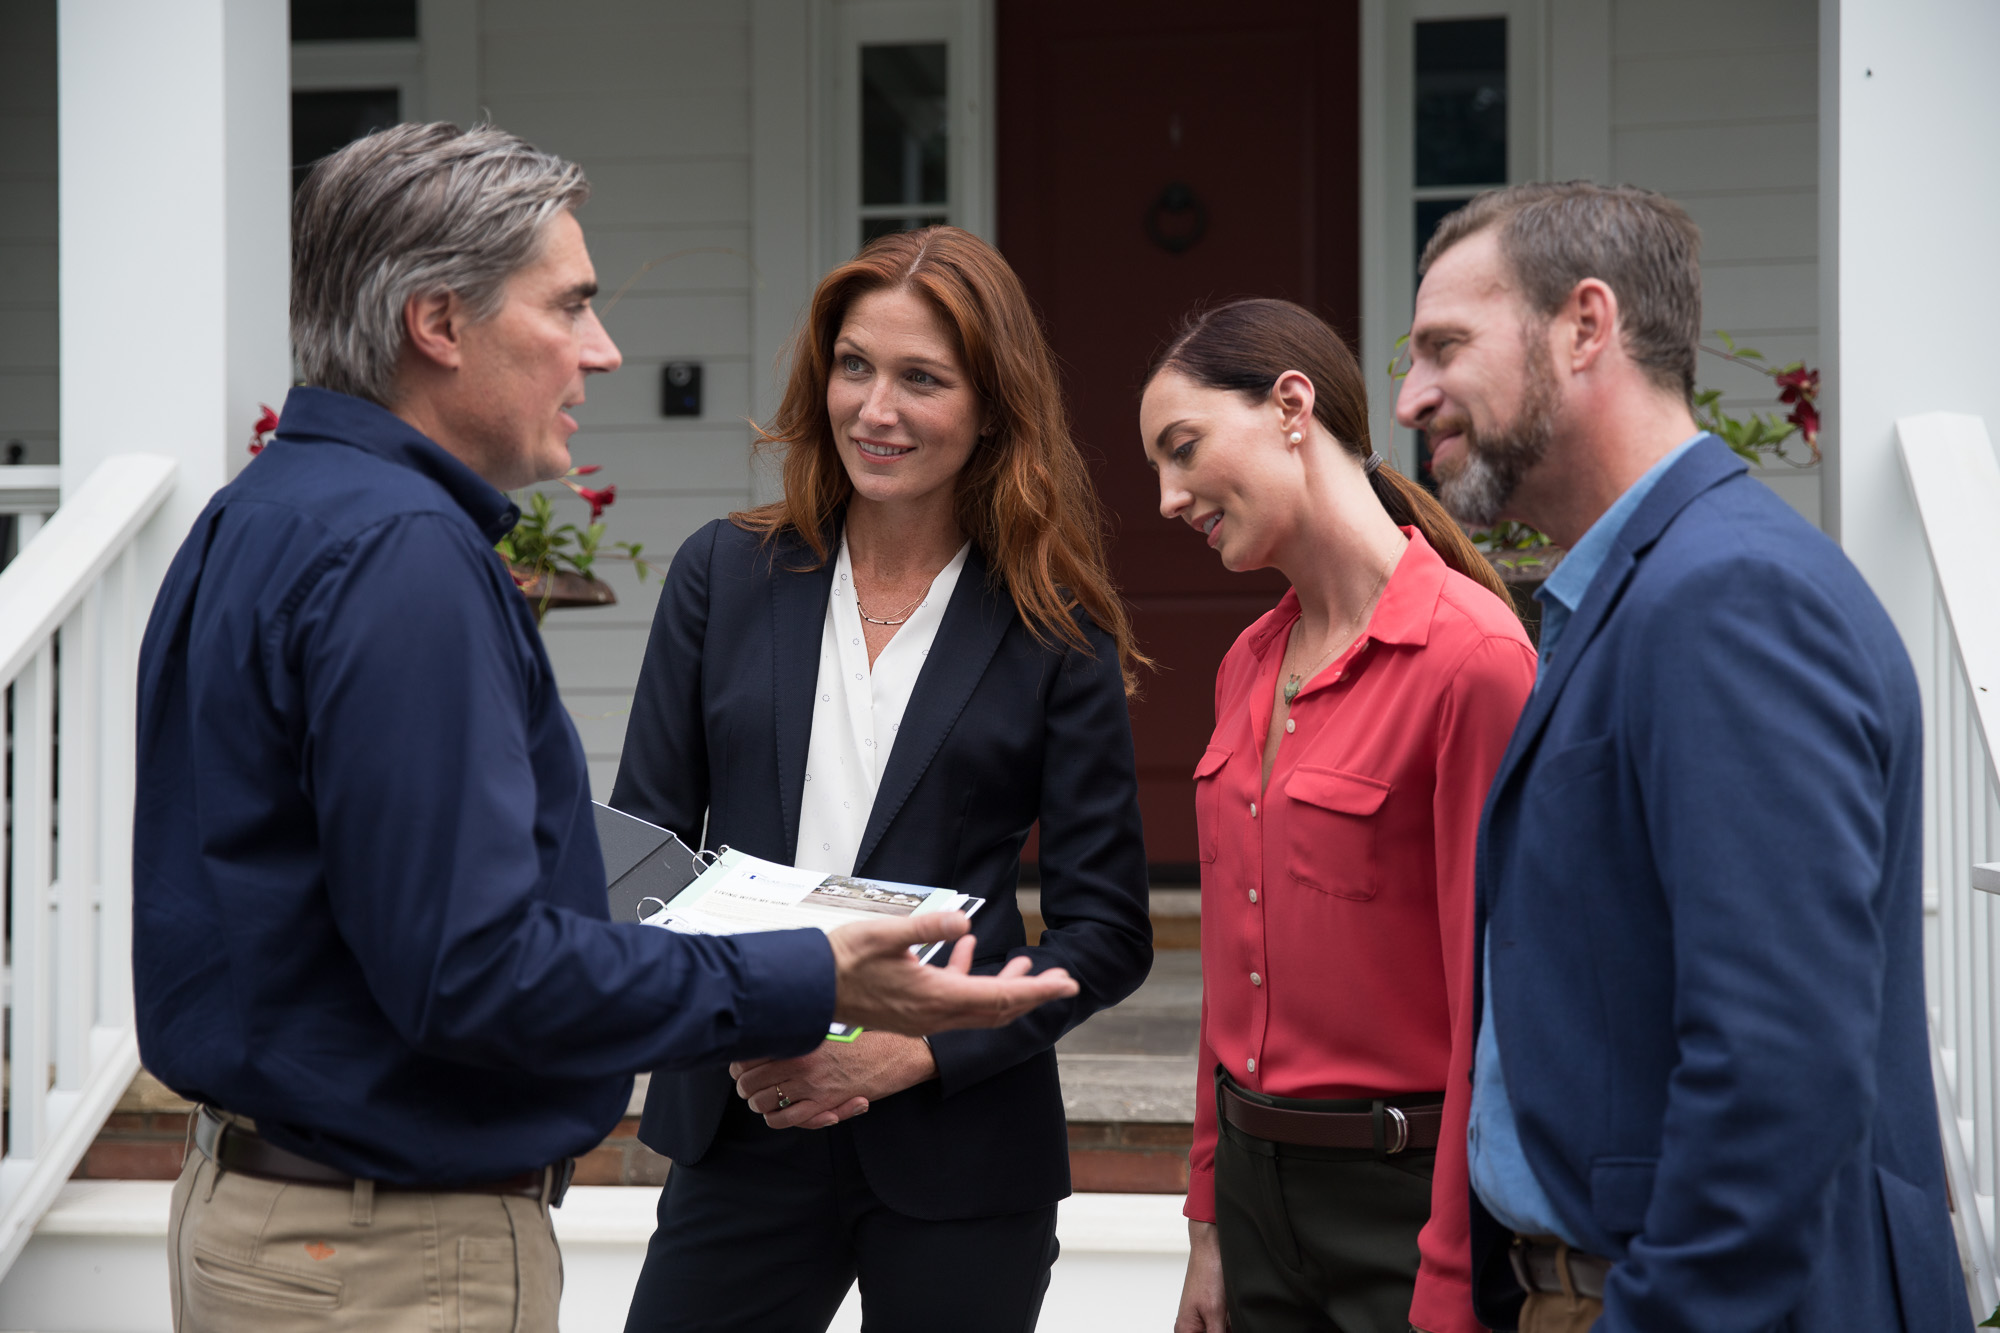 Home Inspector, Realtor and Homebuyers